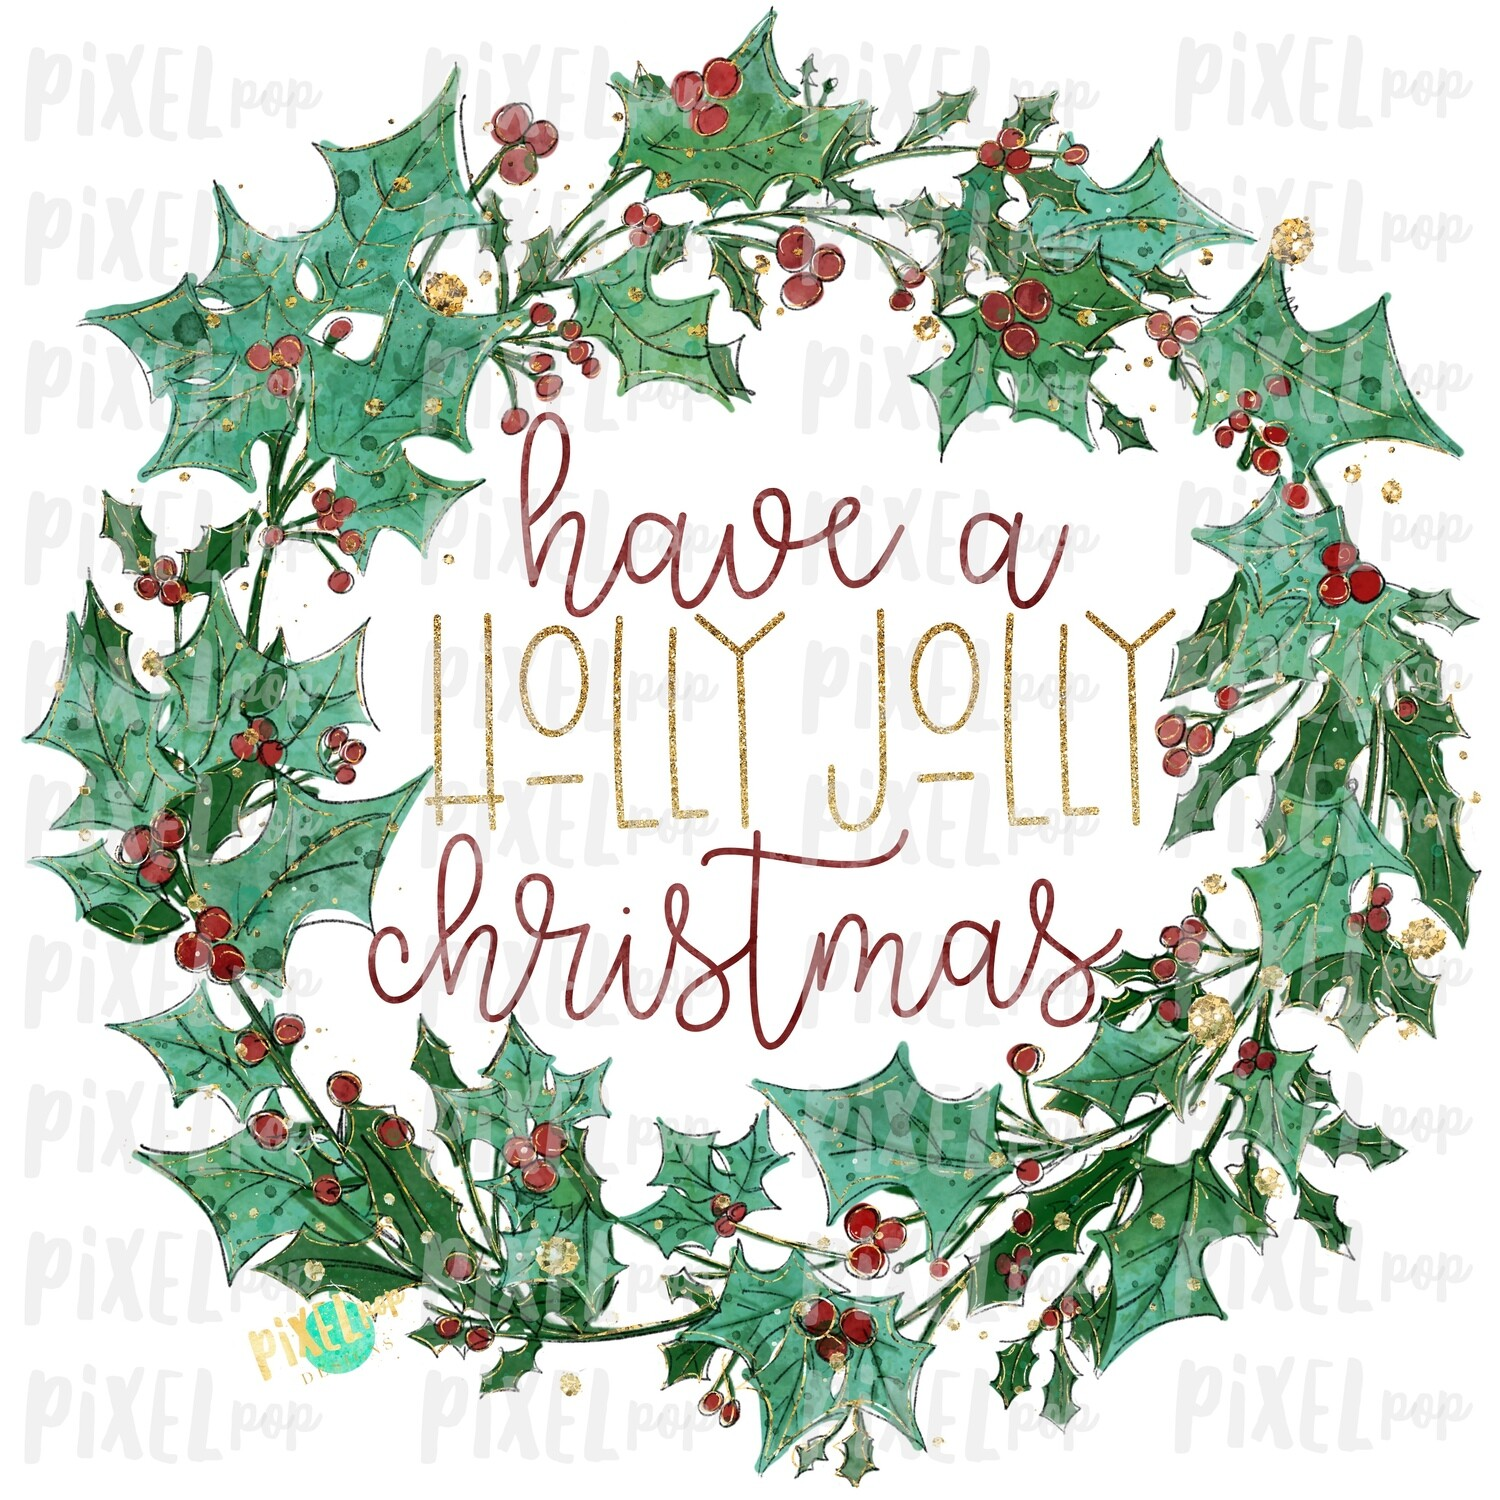 Glitter Wreath Holly Jolly Christmas Watercolor Sublimation PNG | Hand Painted | Sublimation | Digital Download | Printable Artwork | Art